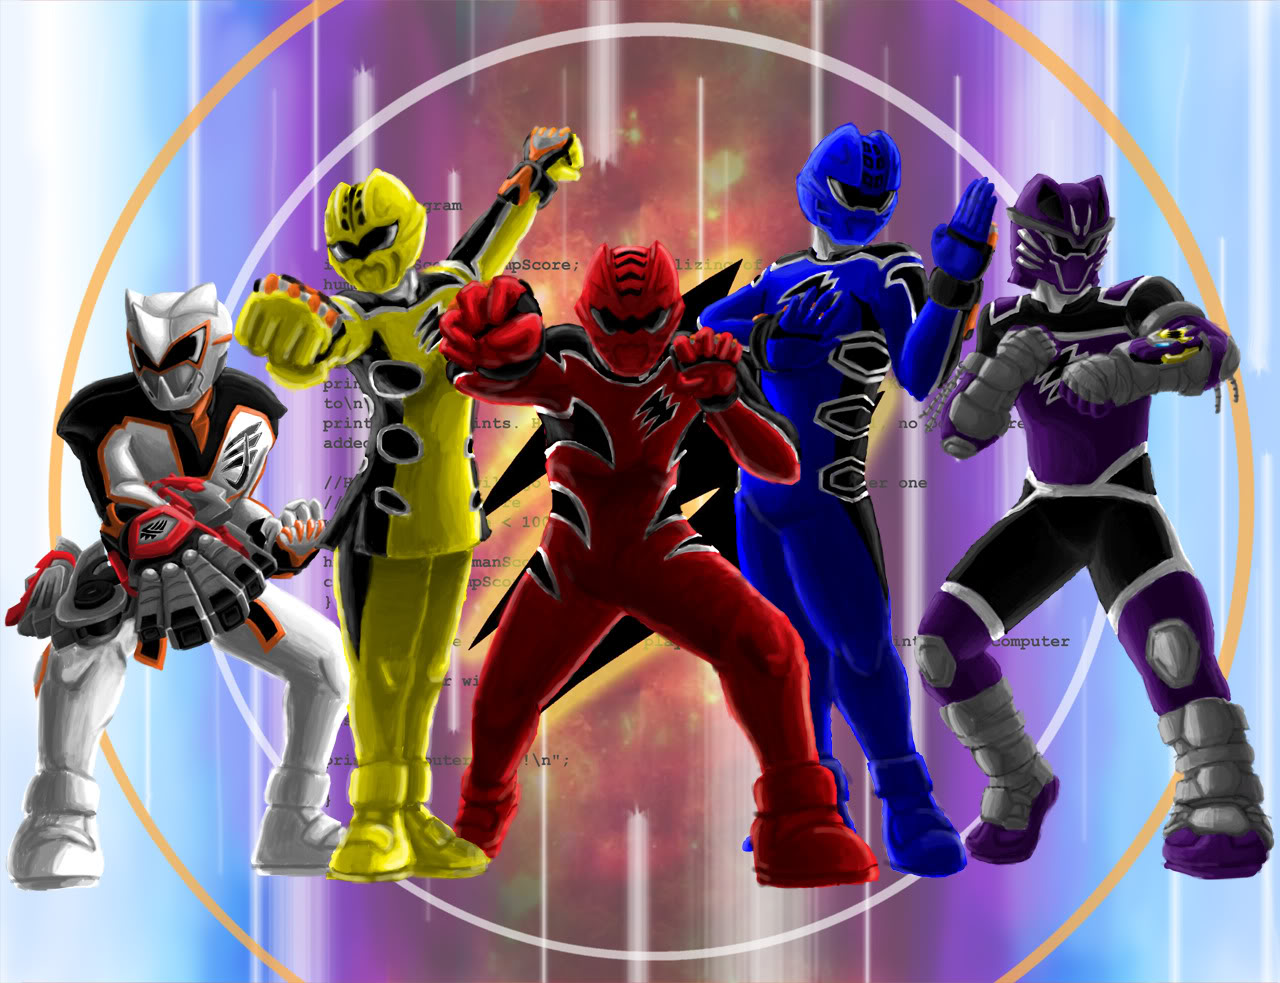 19+] Power Rangers Jungle Fury Wallpapers on WallpaperSafari